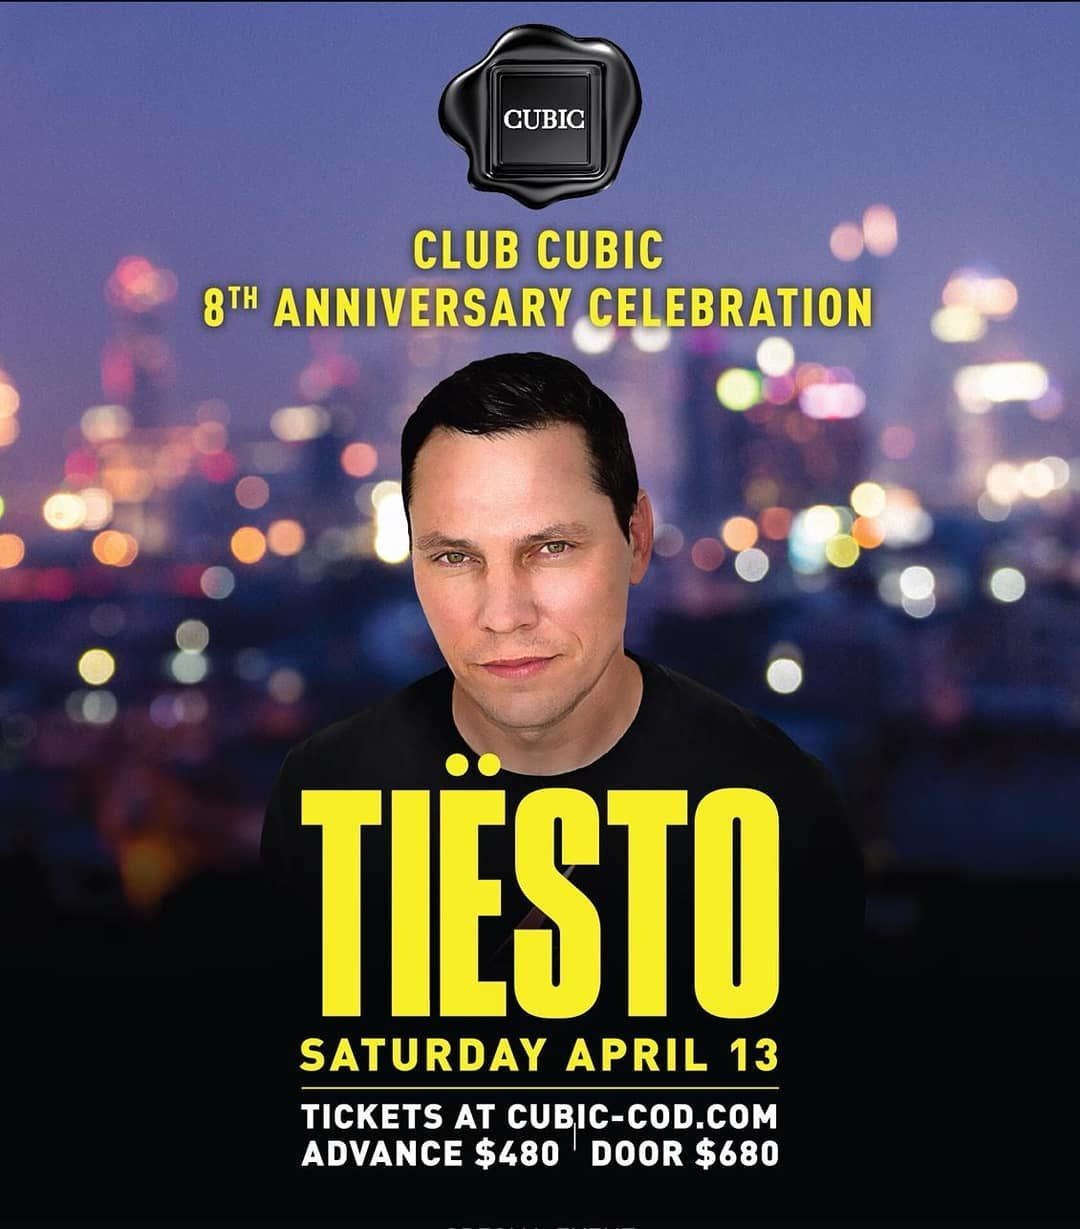 Tiësto date | Club Cubic | Cotai, Macau - April 13, 2019